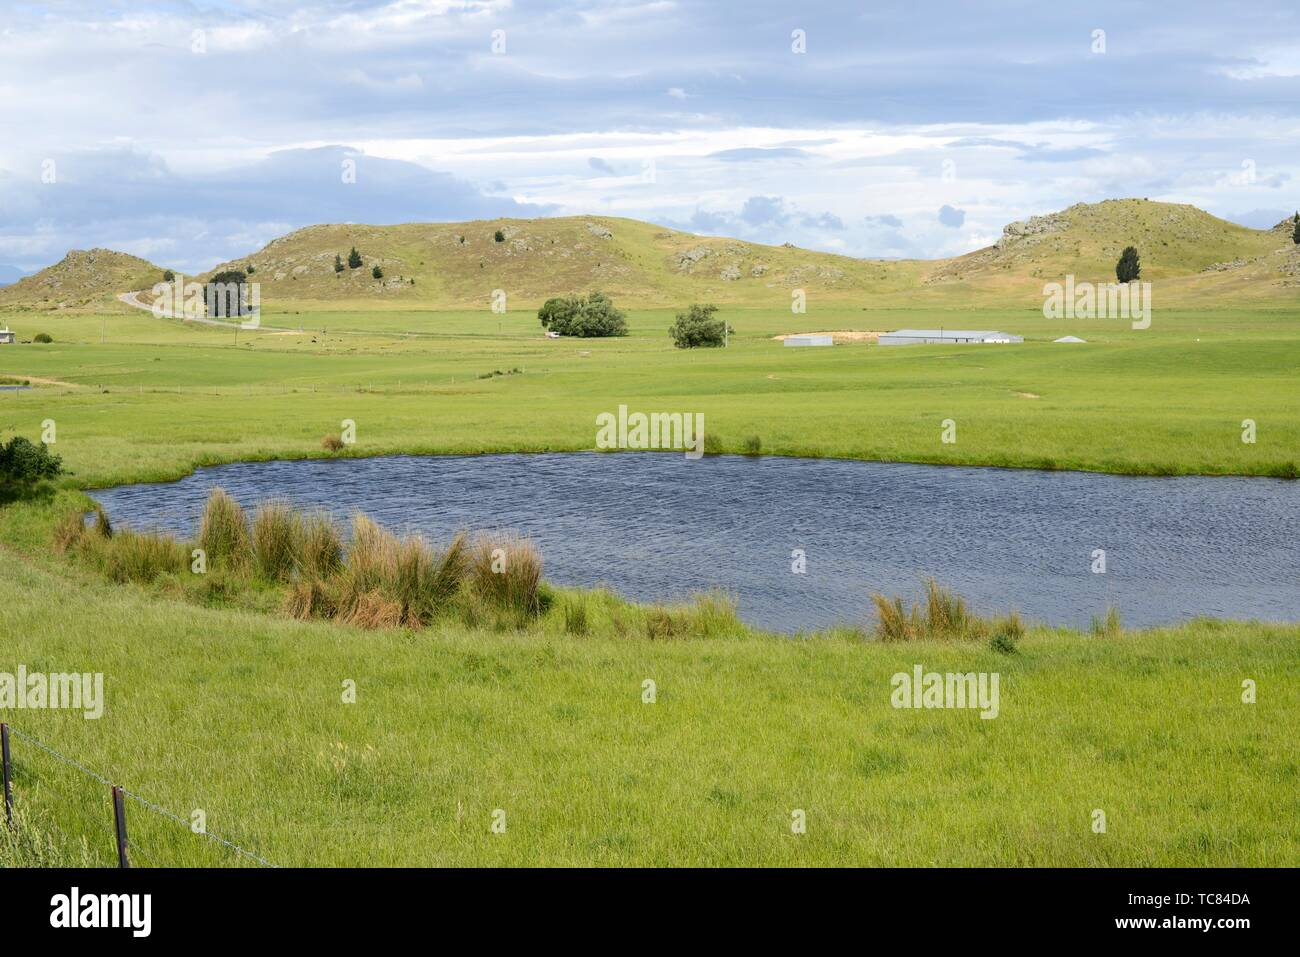 Landscape along the Central Otago Rail Trail, South Island, New Zealand. - Stock Image